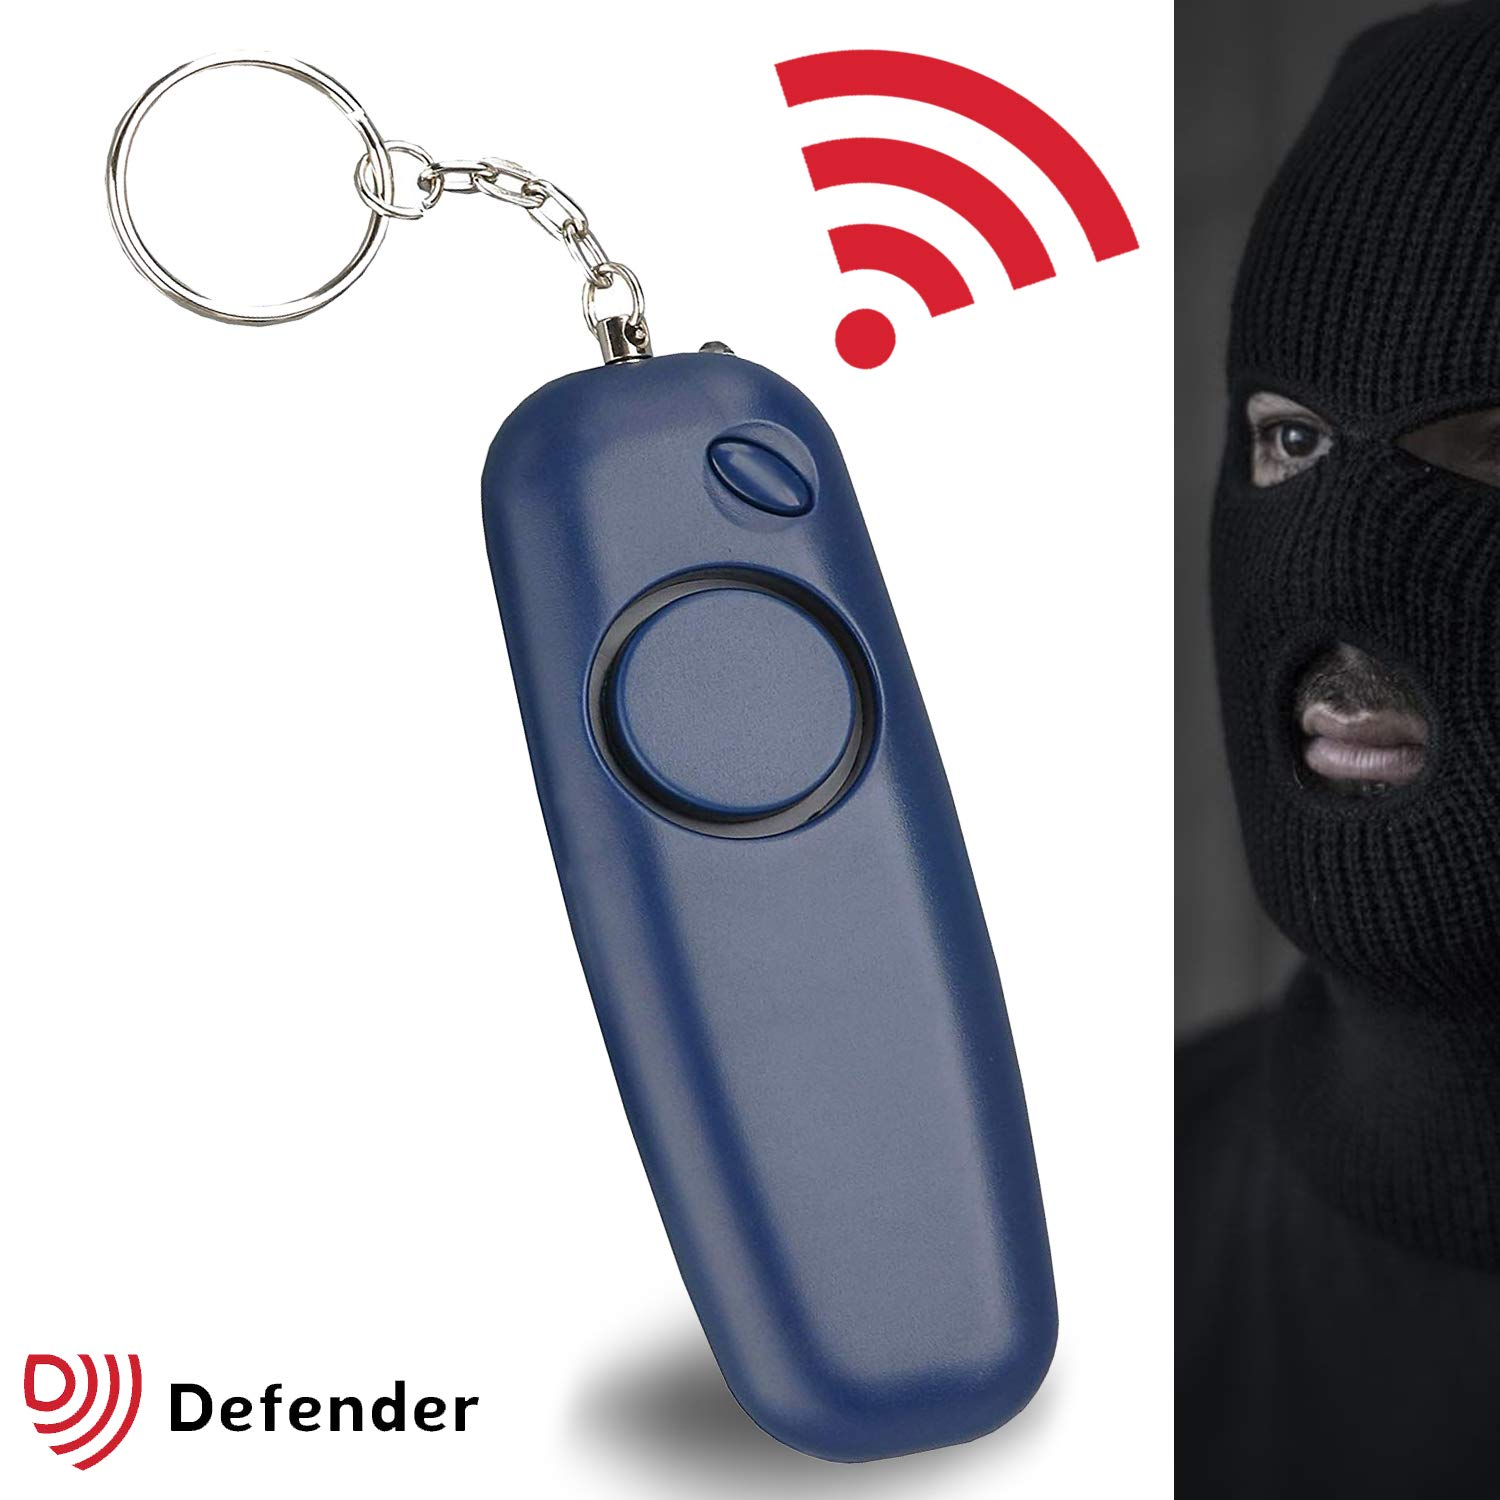 68f9f8c596 Defender Personal Attack Alarm Keyring - Police Approved Panic Alarm for  Personal Safety - Navy Blue: Amazon.co.uk: Garden & Outdoors